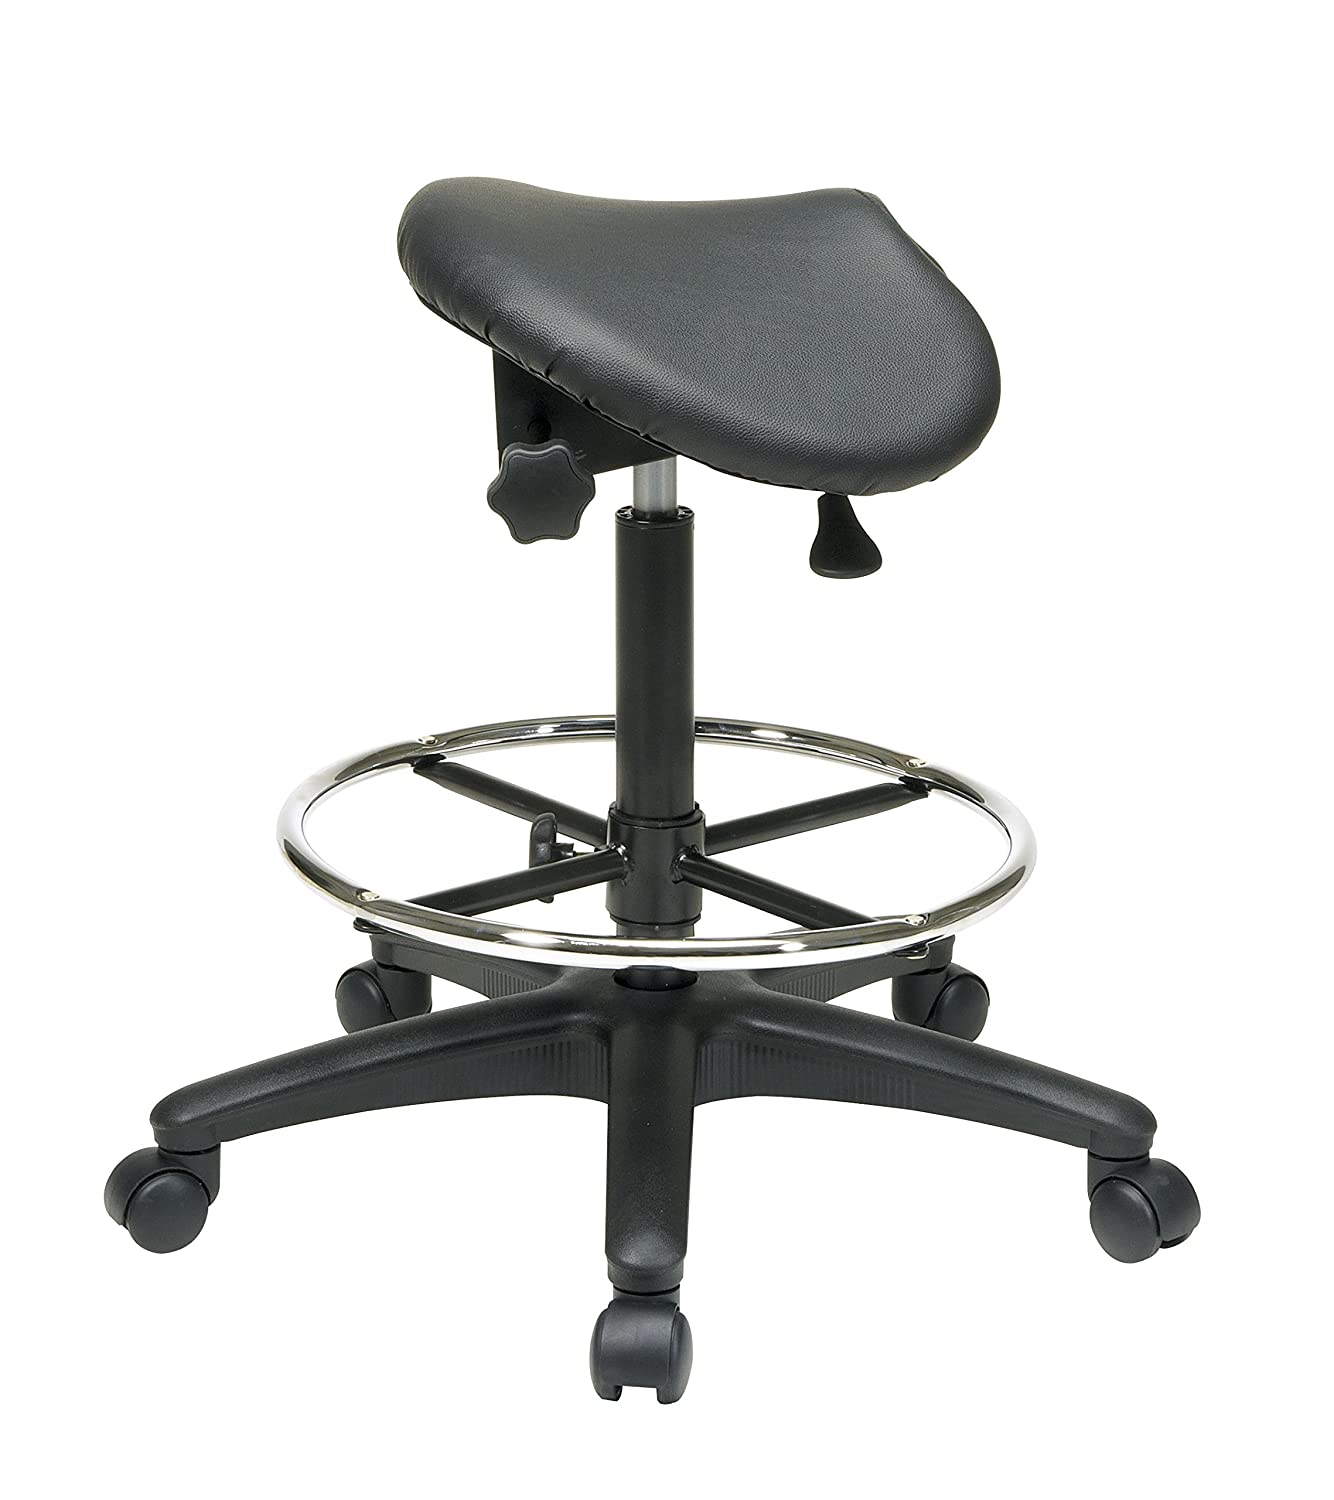 ergonomic chair betterposture saddle chair jobri. WorkSmart Seating Star Backless Office Stool With Saddle Seat And Angle Adjustment, Black, 25 To 35\ Ergonomic Chair Betterposture Jobri